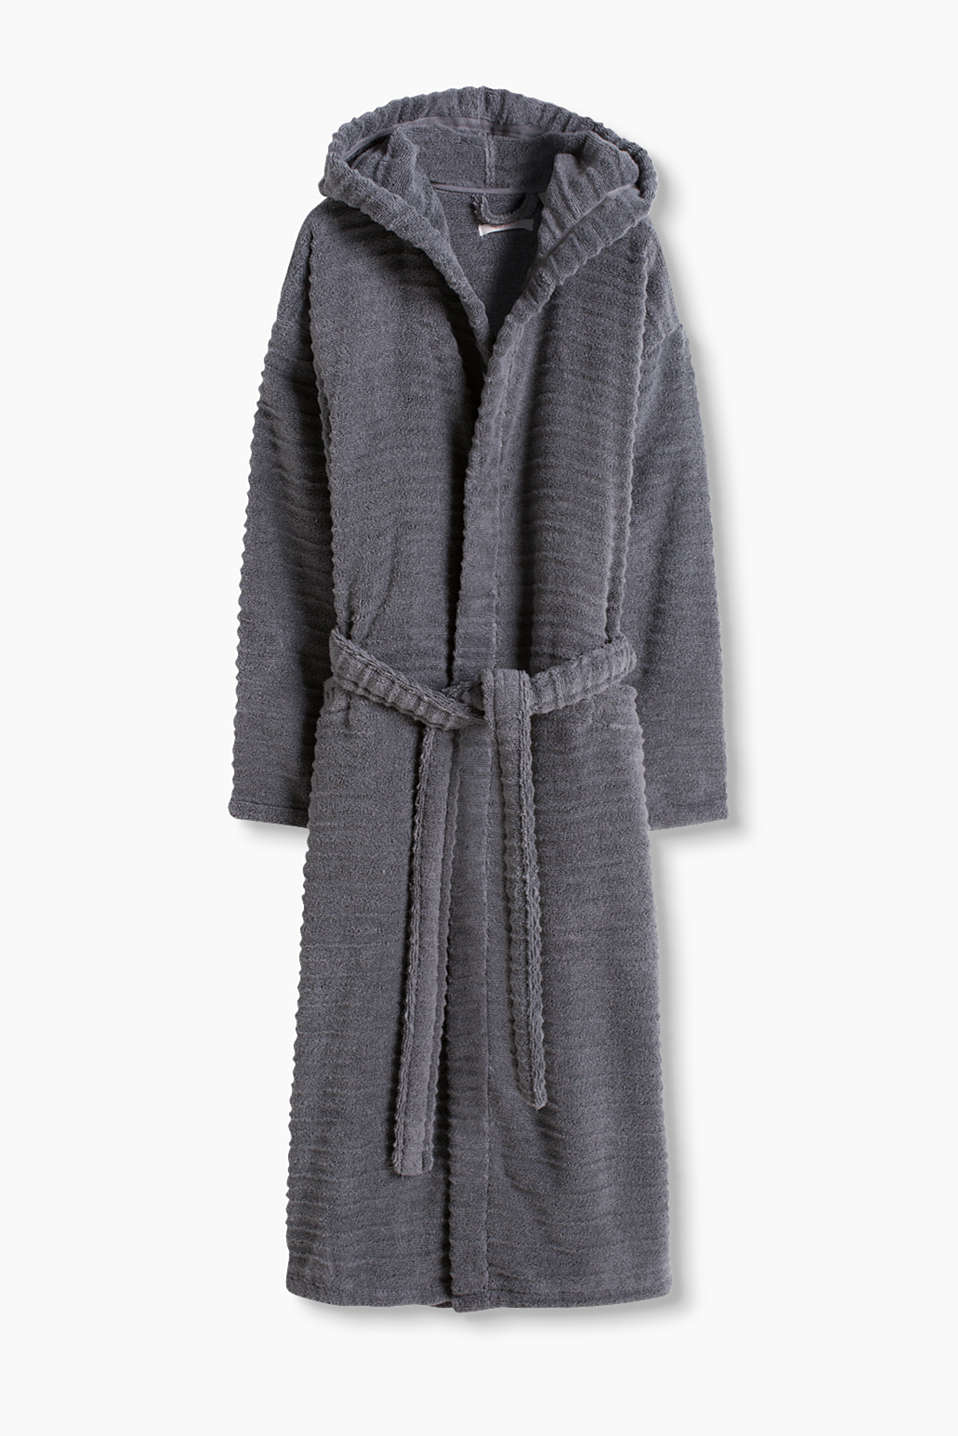 Esprit - luxe dressing gown, 100% cotton